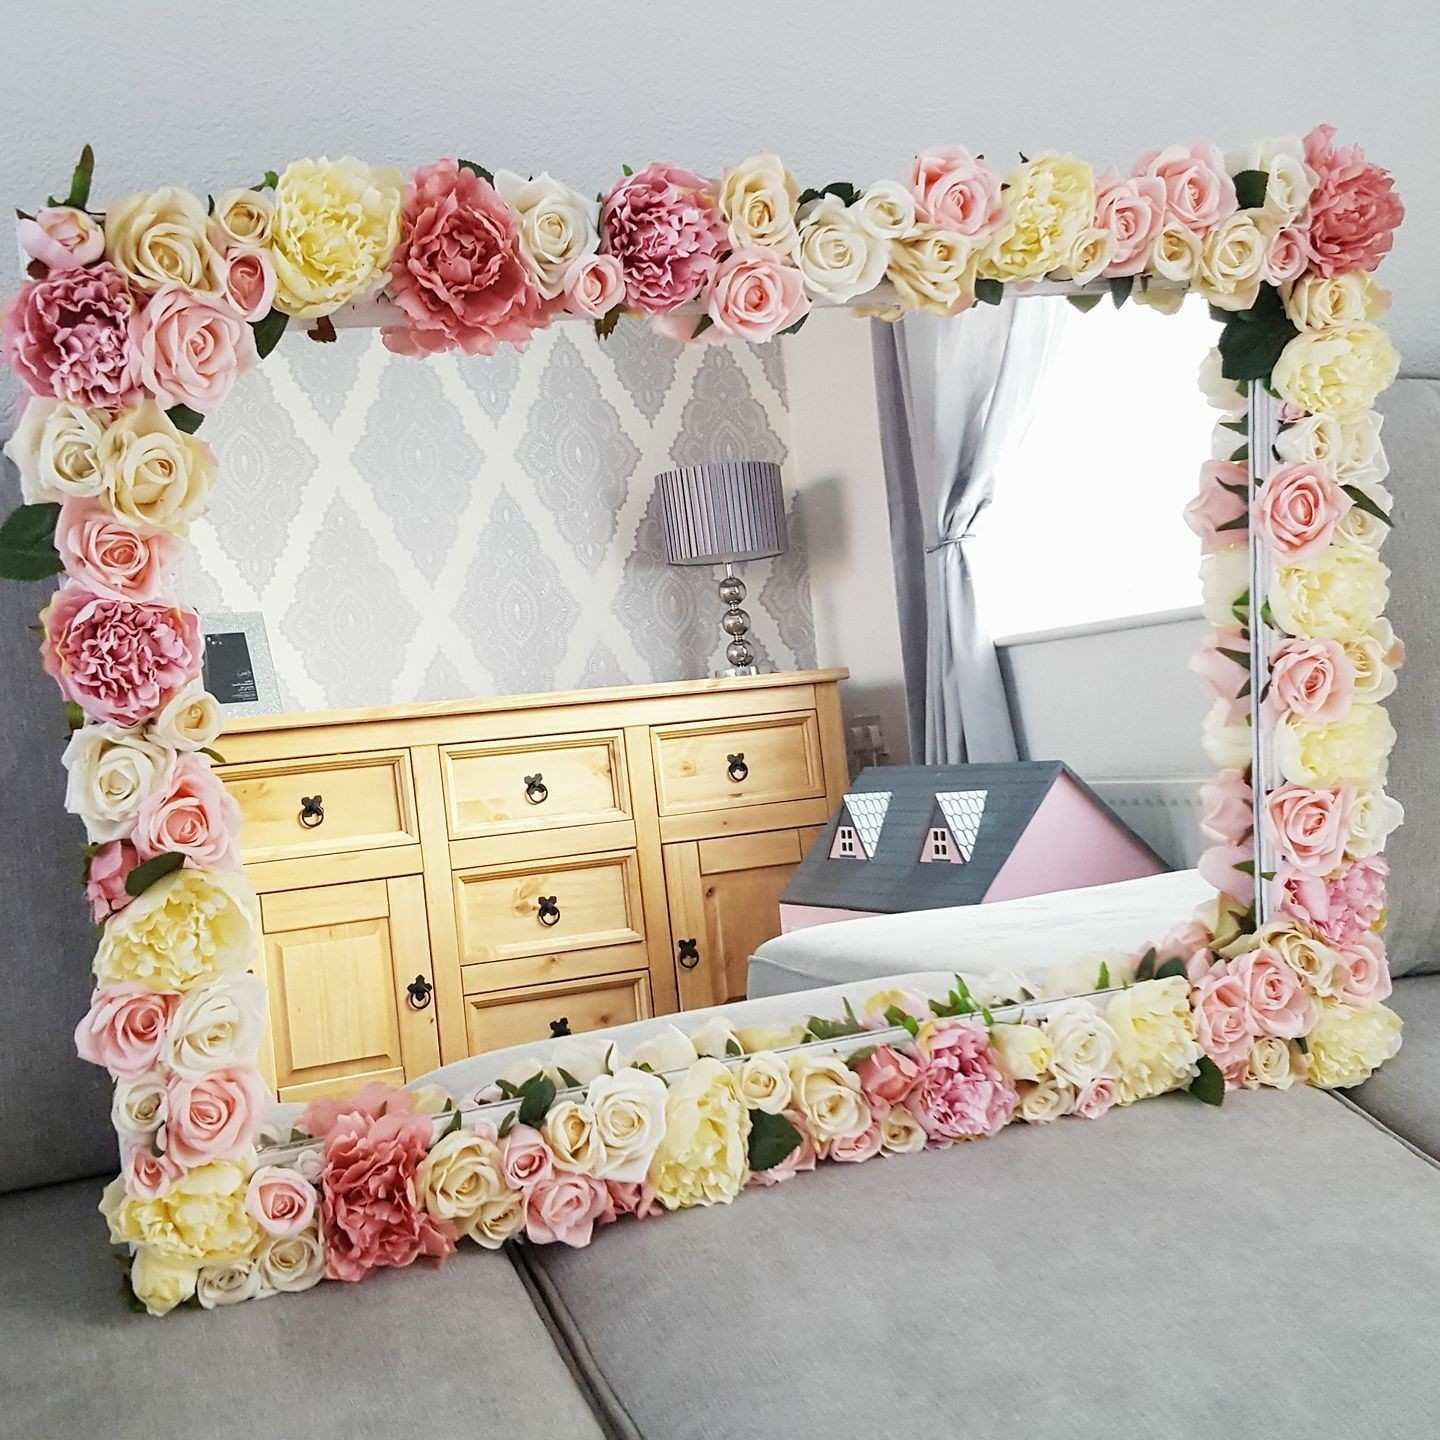 DIY Flower mirror Glue the artificial flowers on